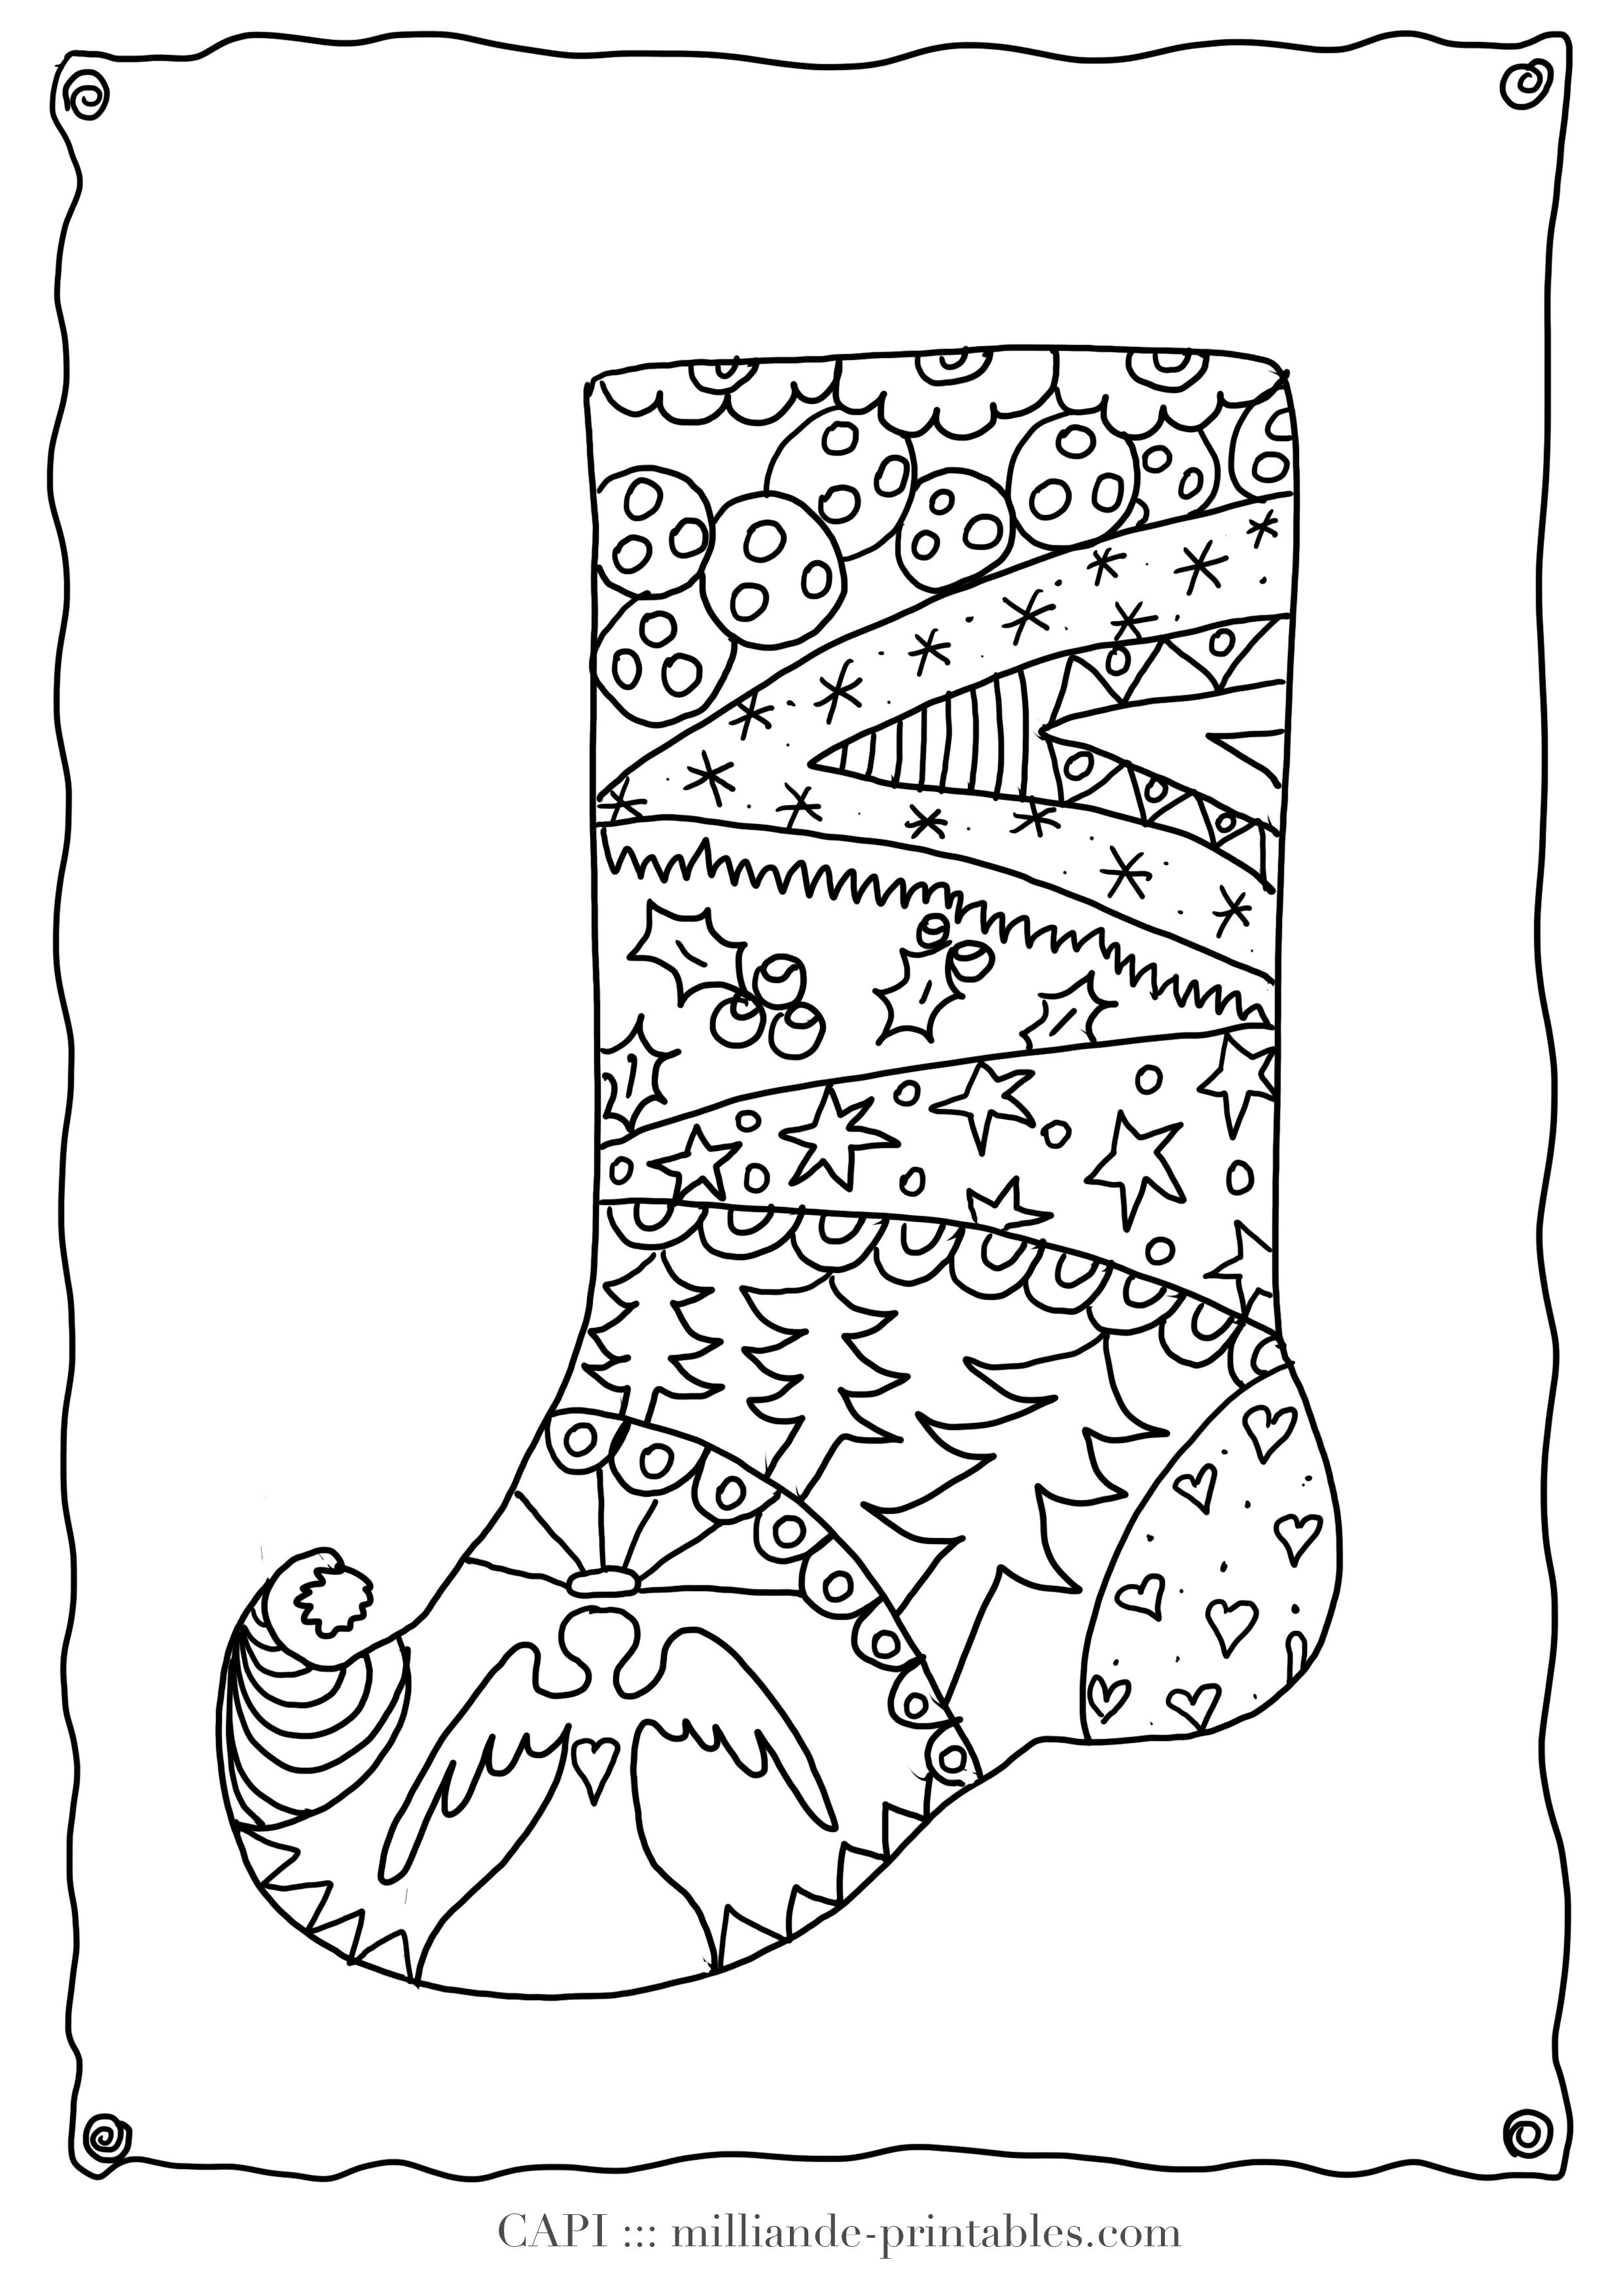 Christmas Coloring Activity Pages Printable With Detailed Bing Images Design Pinterest